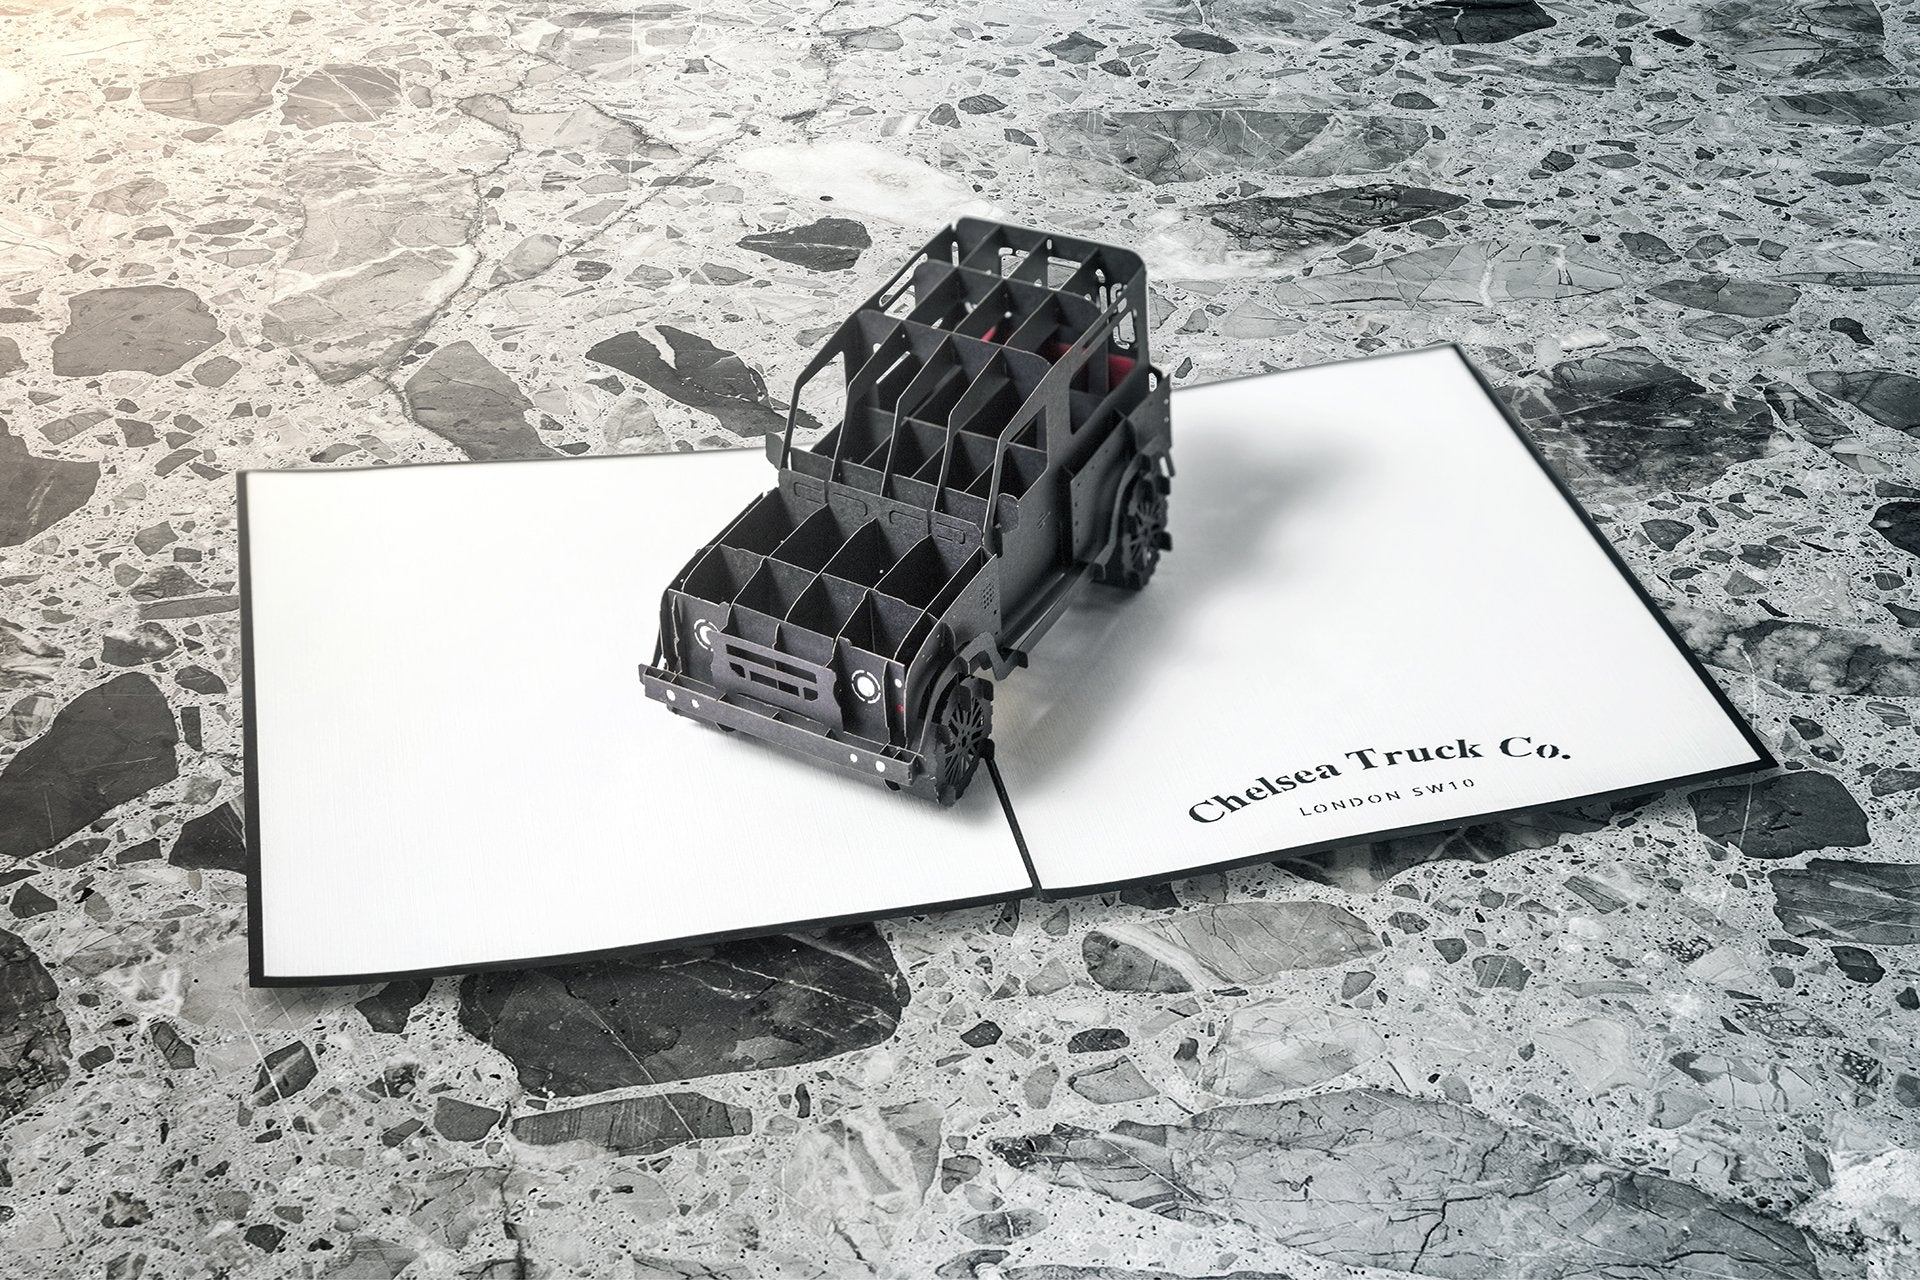 Land Rover Defender 90 (1991-2016) Chelsea Truck Co 3D Greeting Card